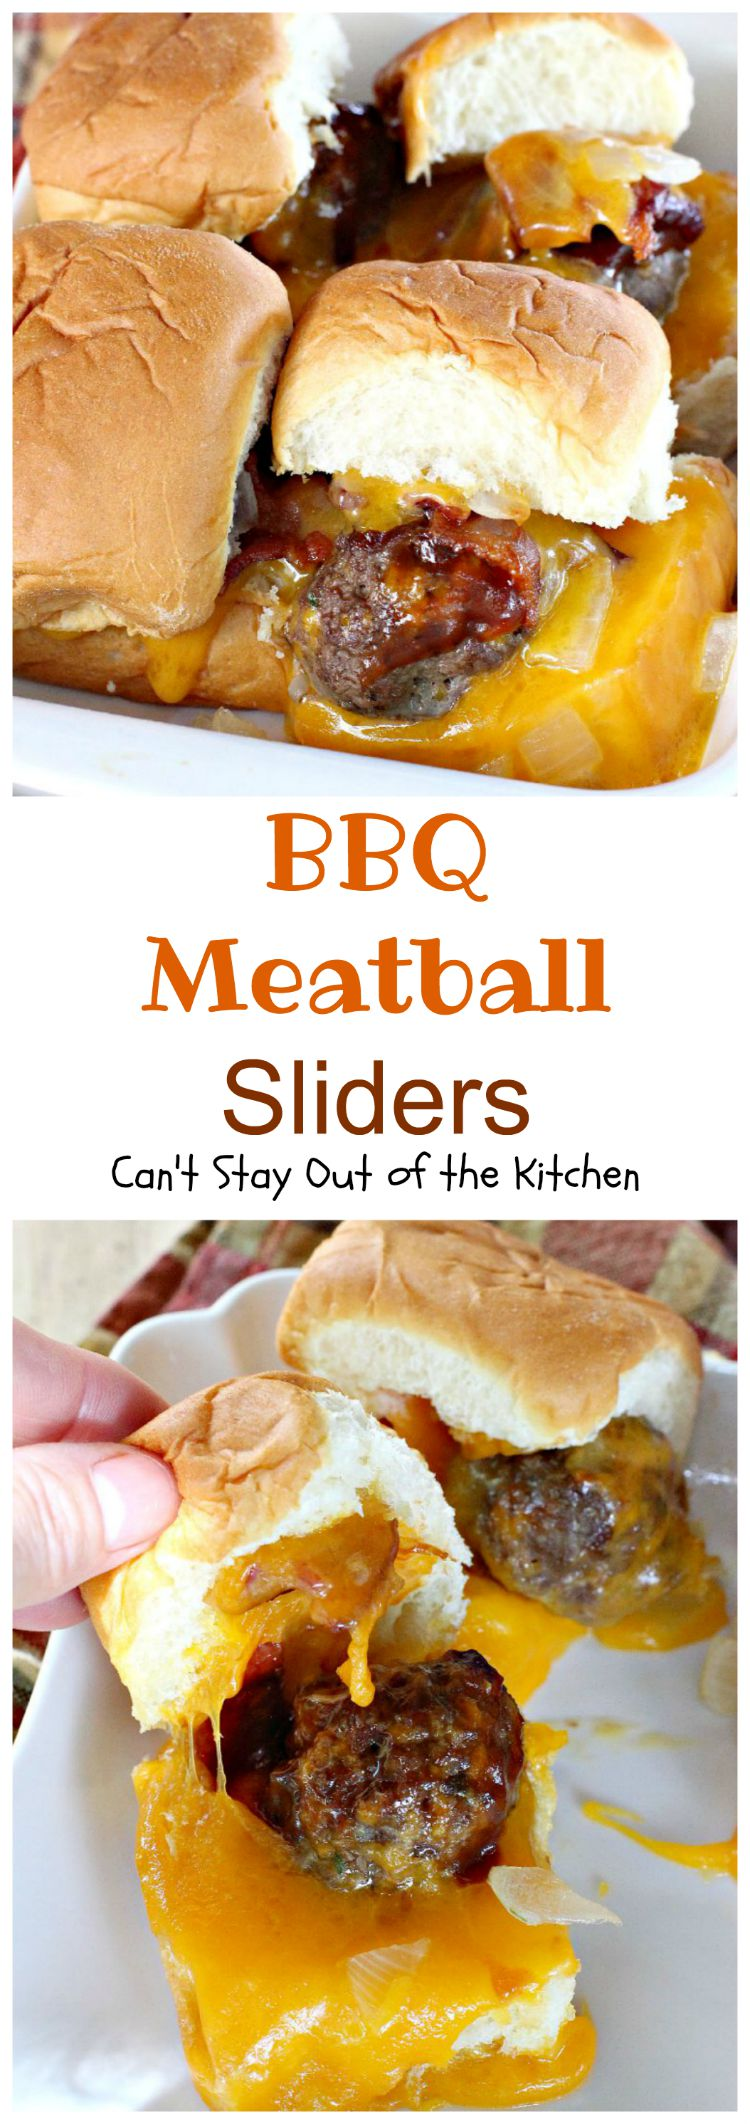 BBQ Meatball Sliders | Can't Stay Out of the Kitchen